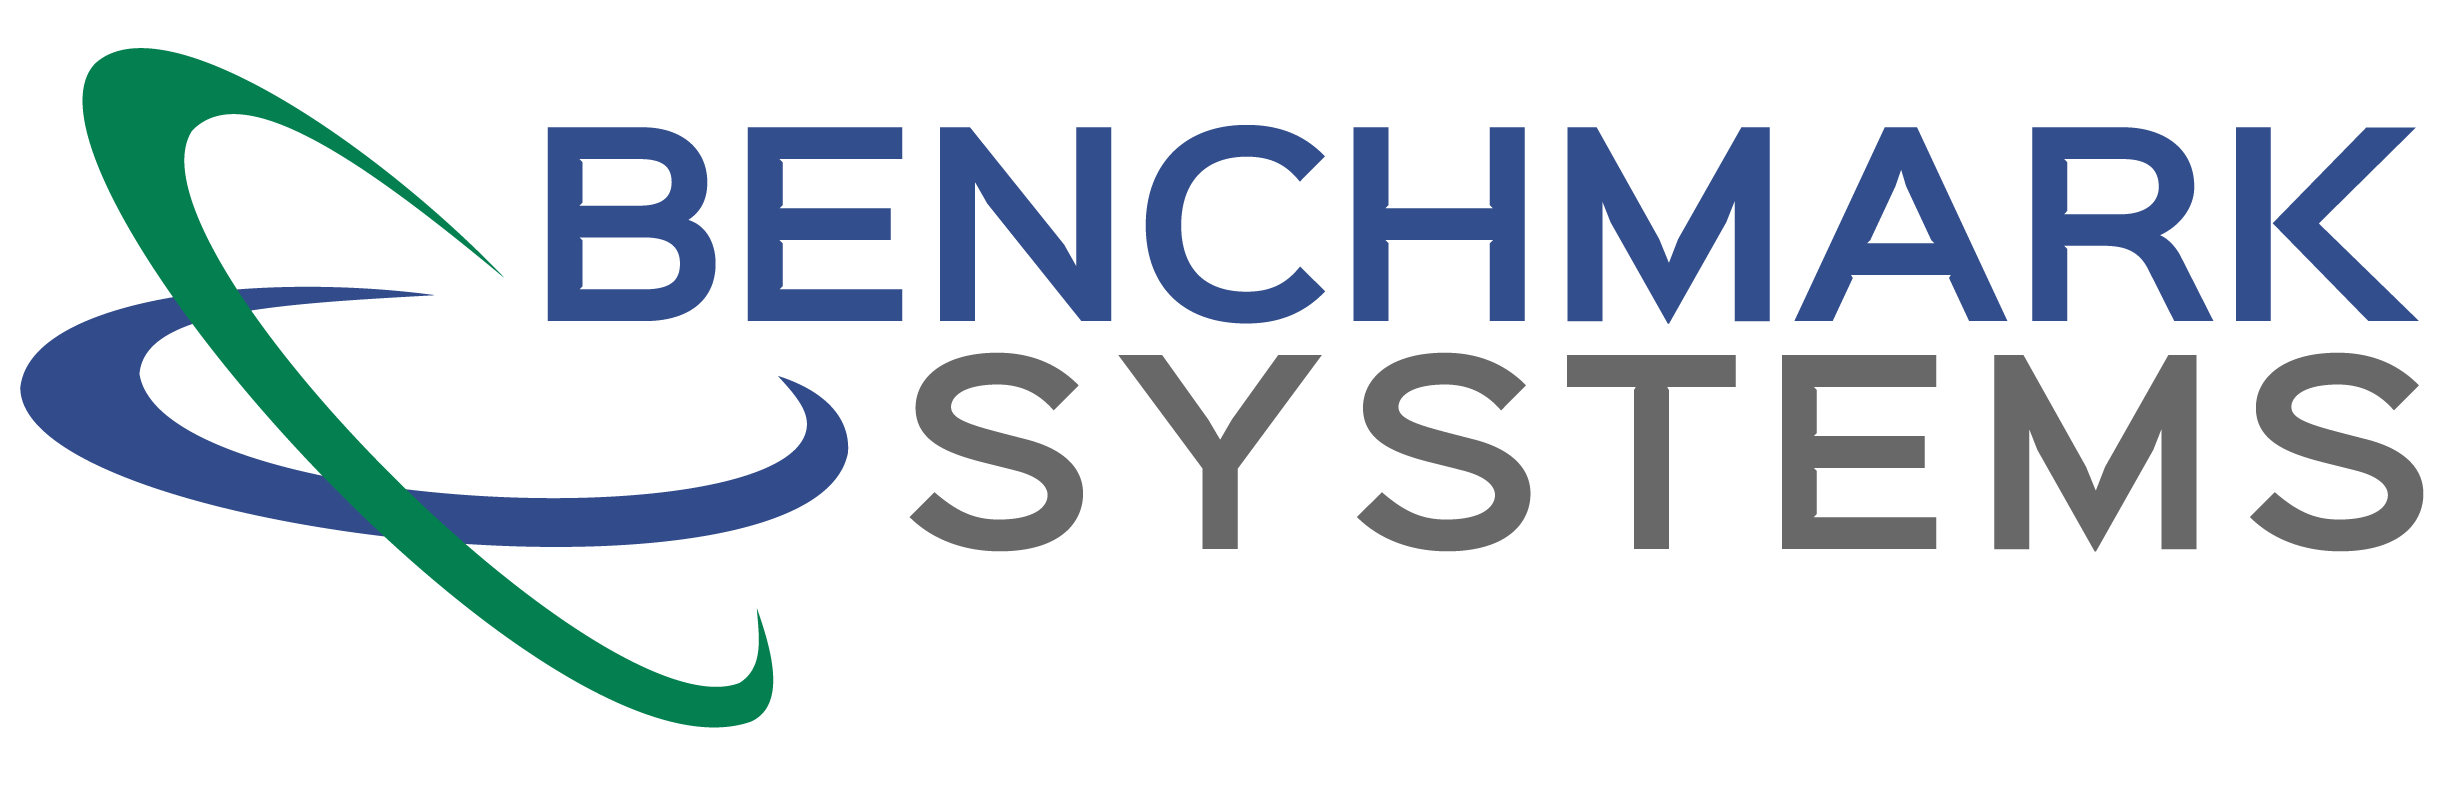 Benchmarksystems logo